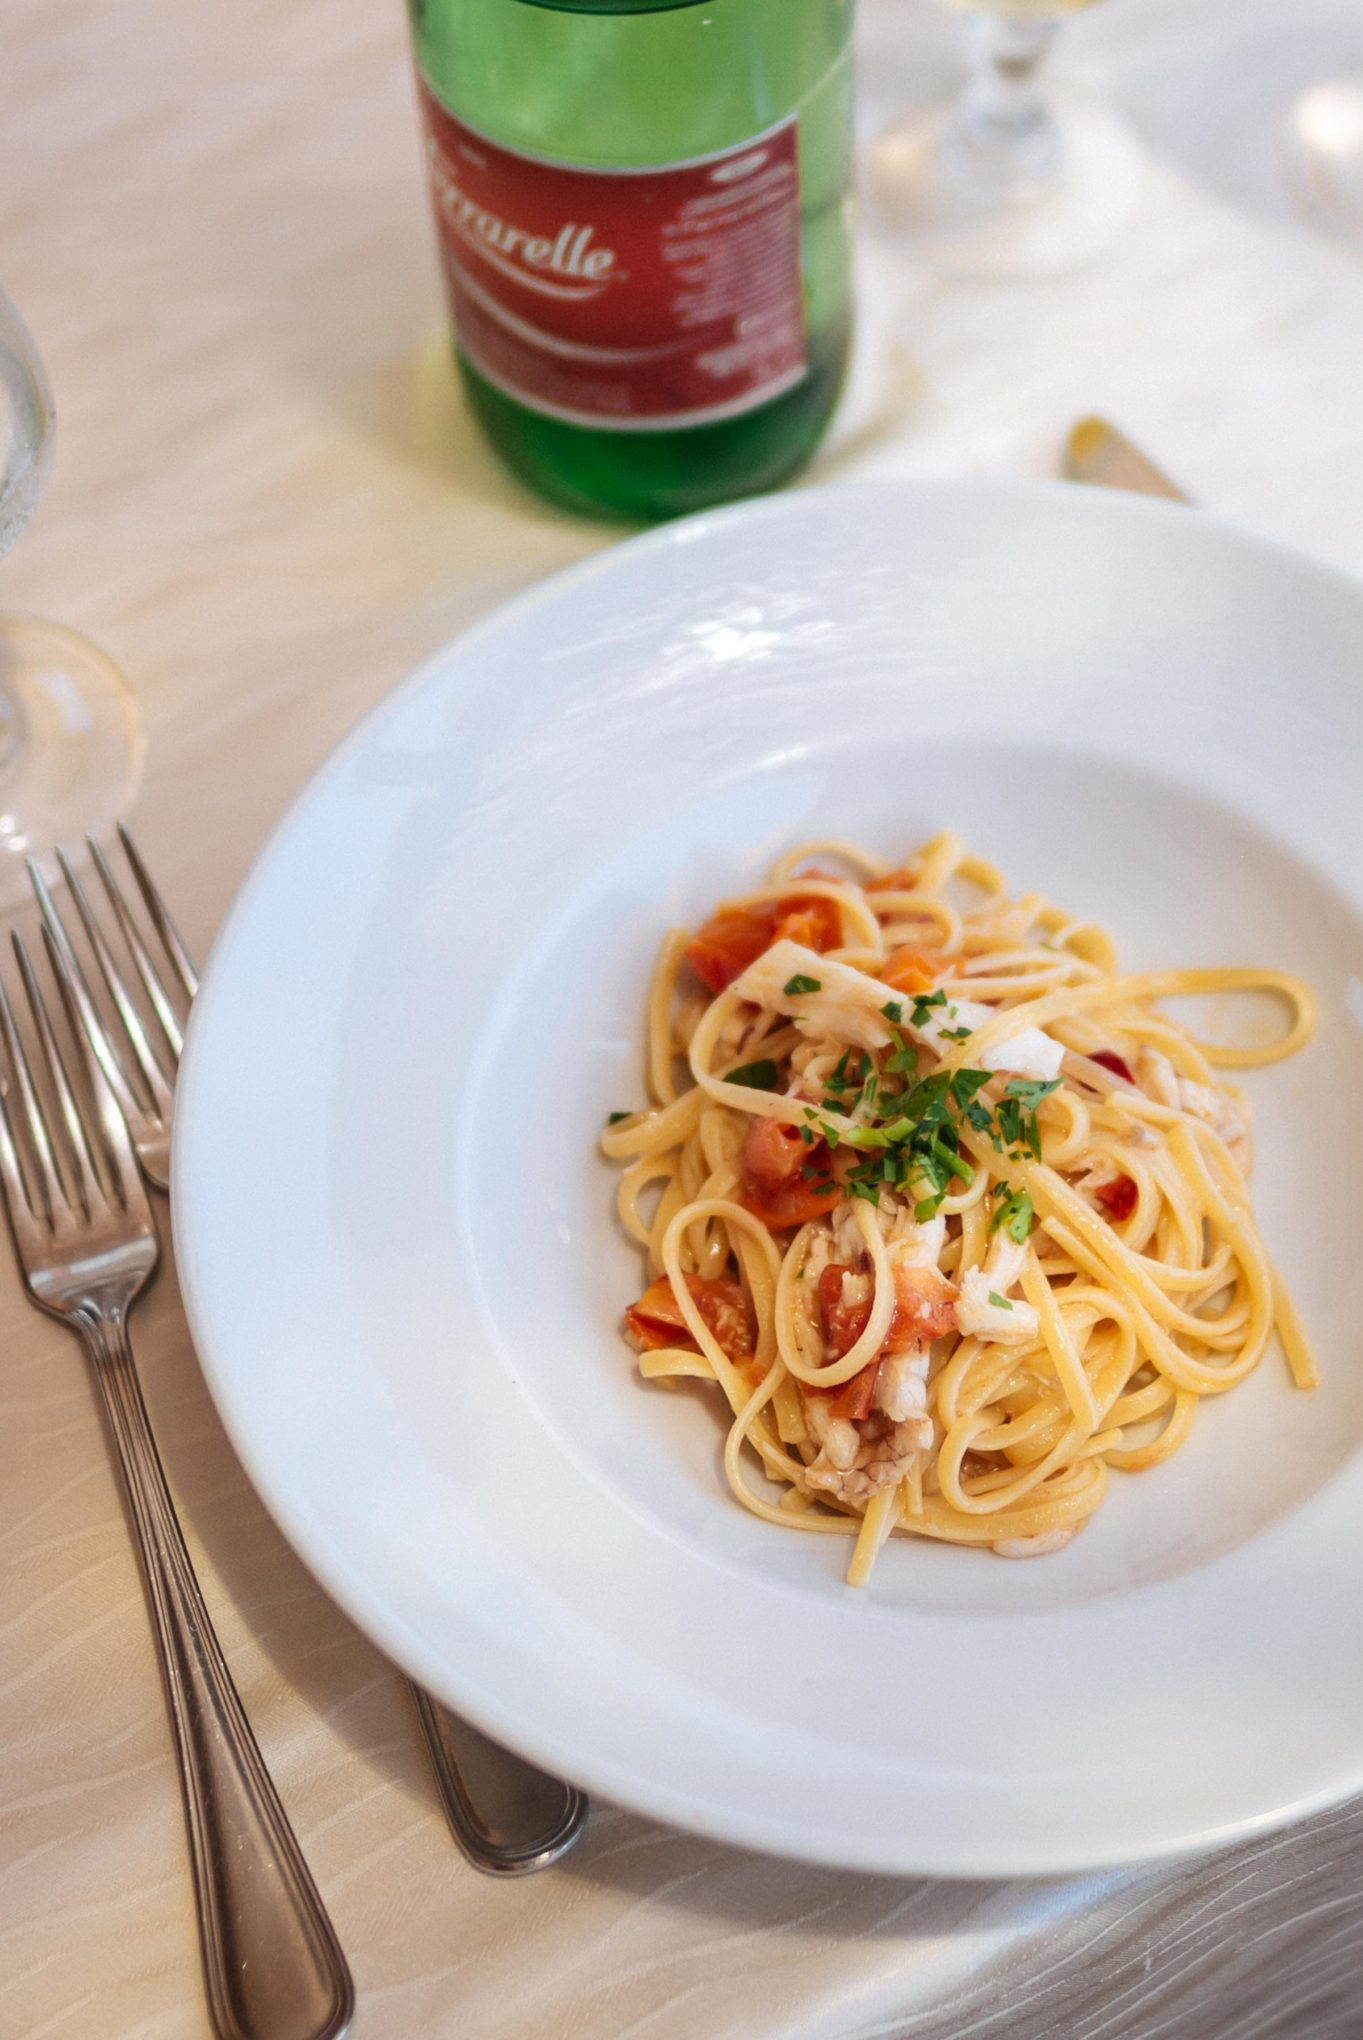 Make this Italian bucatini and Fish Pasta with Cherry Tomatoes recipe from The Taste SF